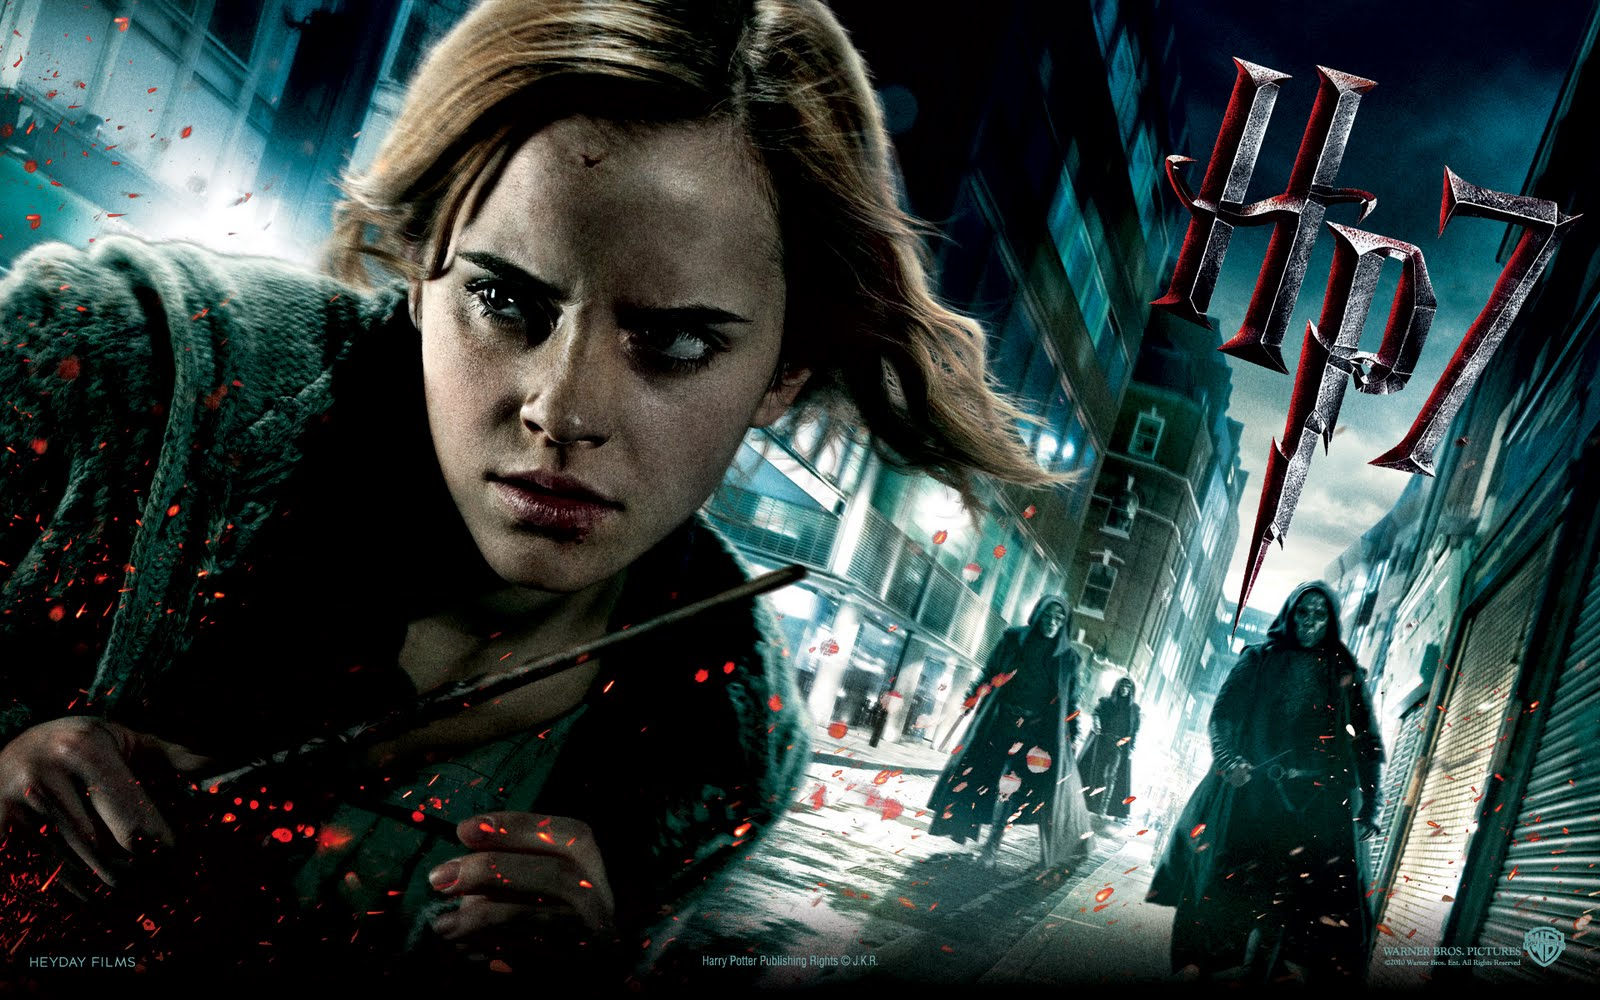 http://2.bp.blogspot.com/-RnxbmQNFDaI/Tft4y5V1FOI/AAAAAAAACQc/tmohqHCkn04/s1600/emma-watson-in-harry-potter-and-the-deathly-hallows-part-i-wallpaper-19_1920x1200_88262.jpg